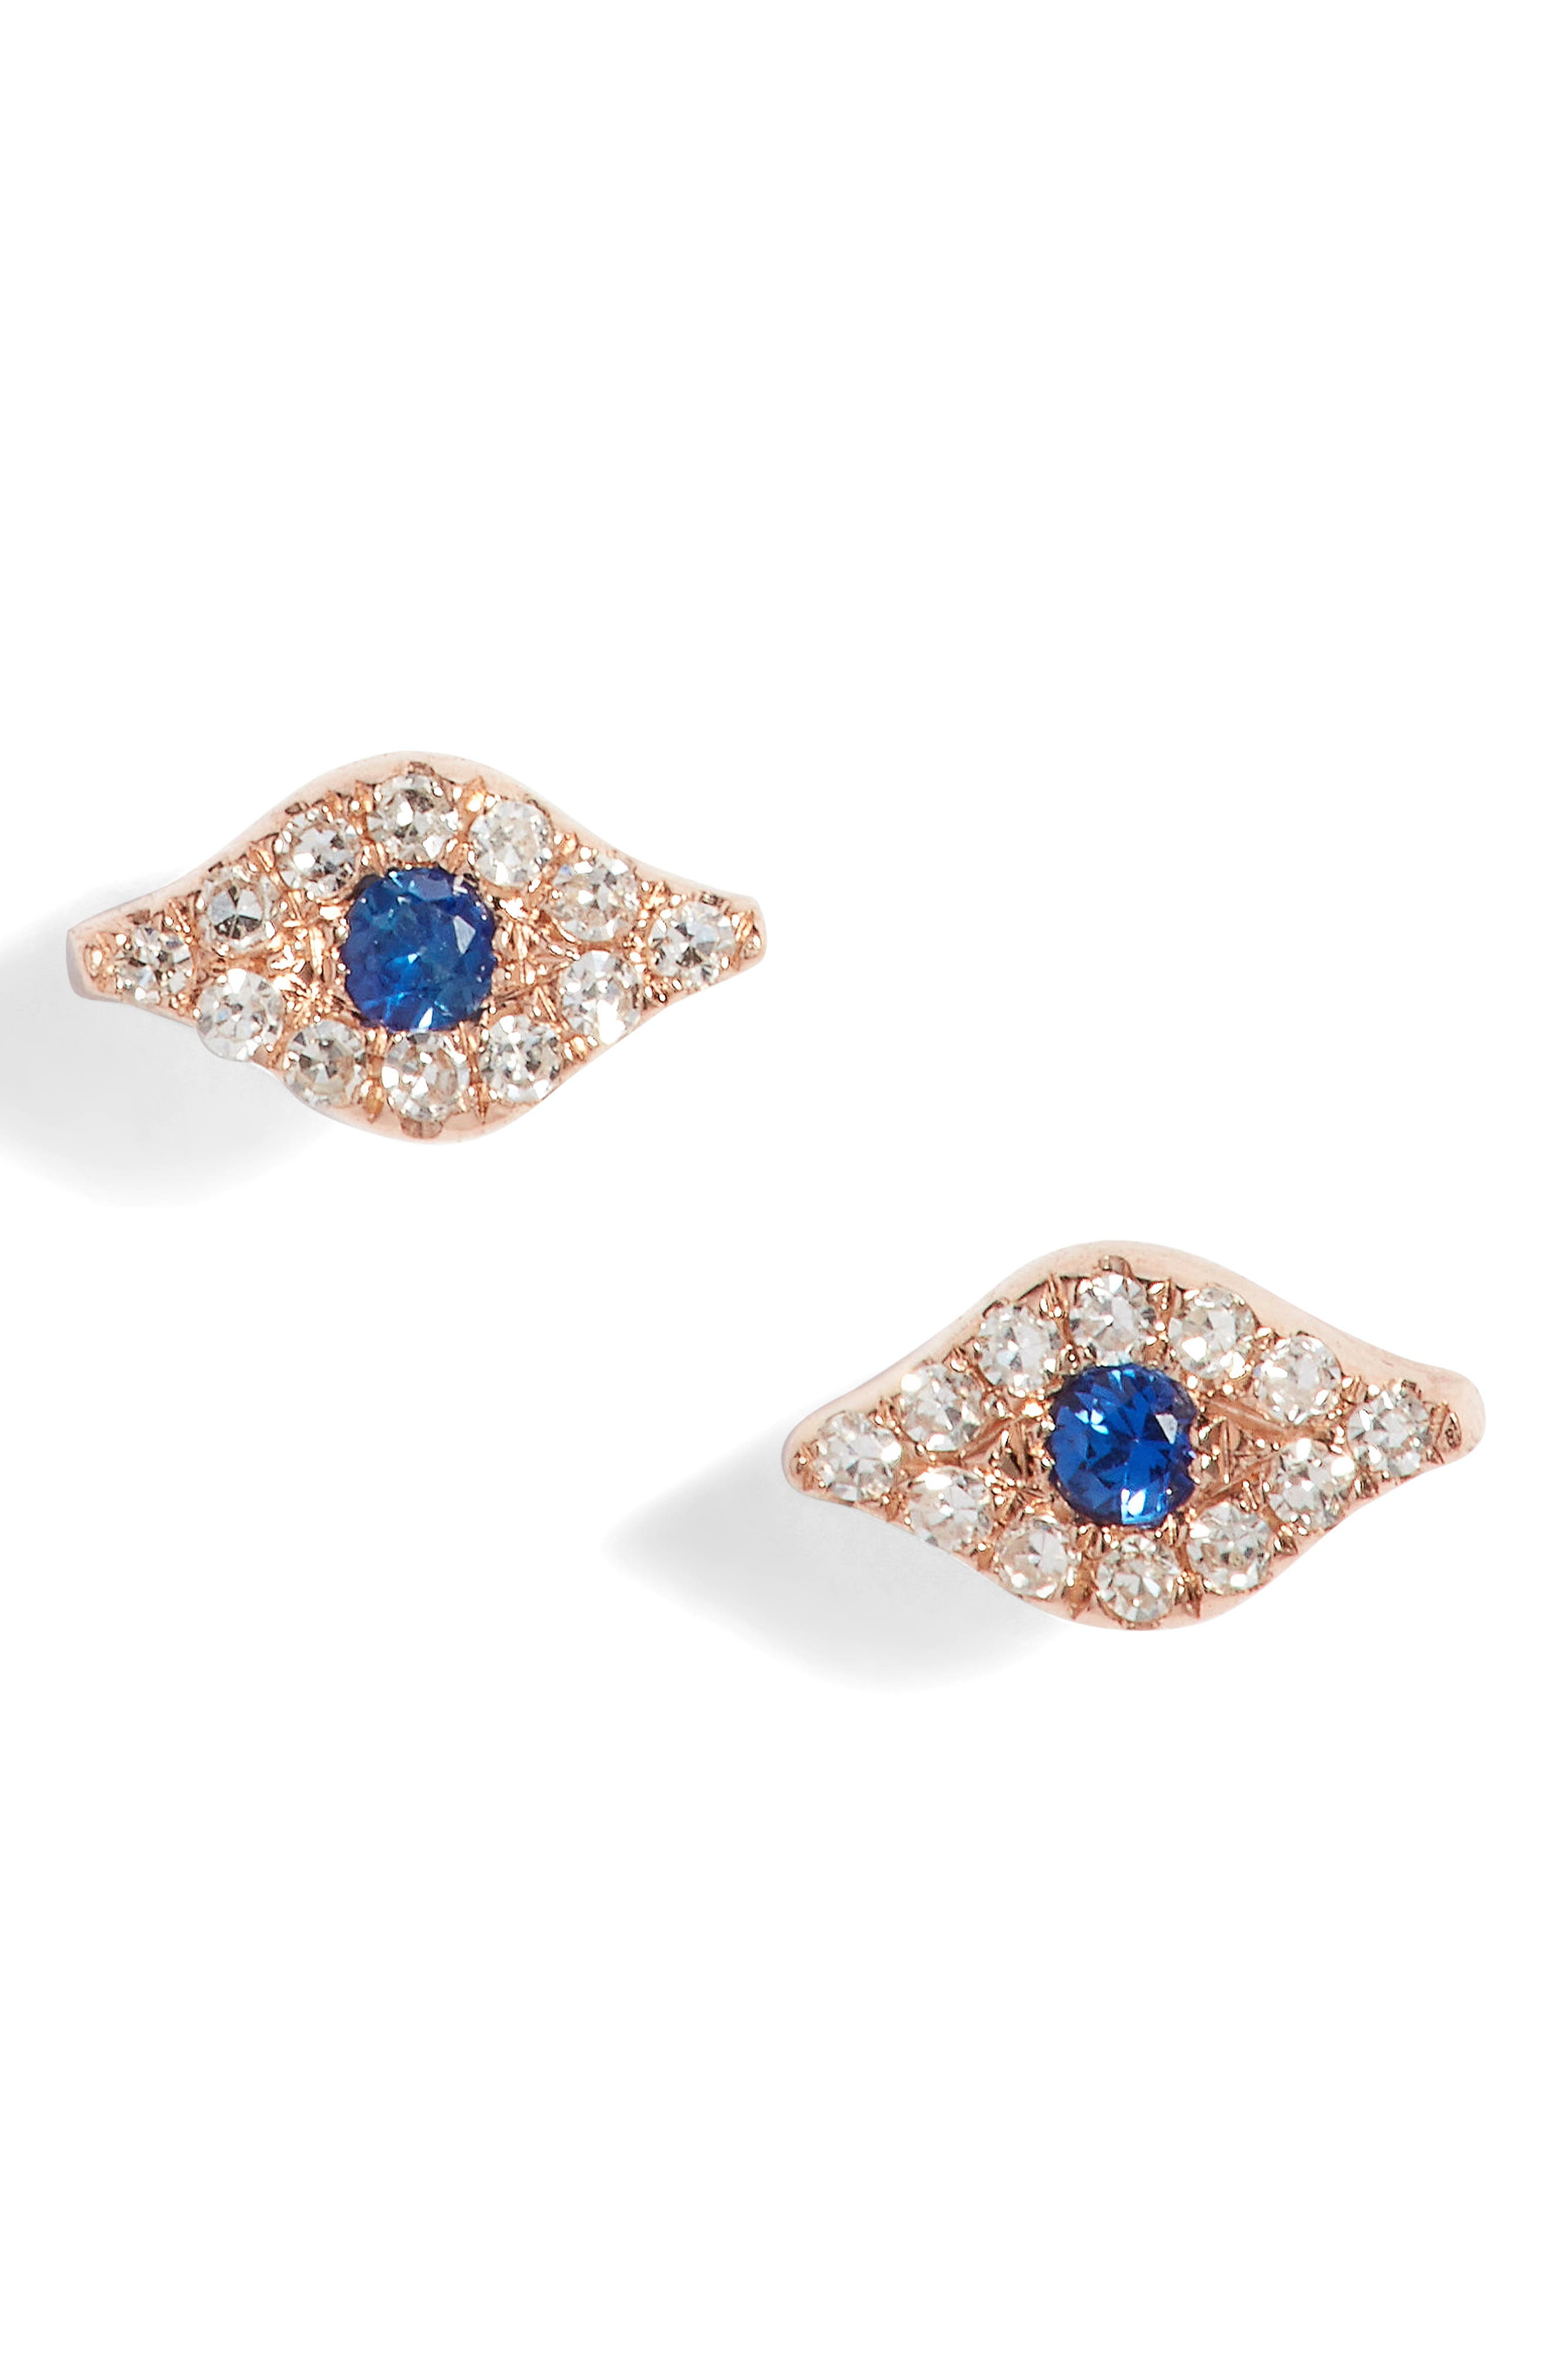 Evil Eye Diamond & Sapphire Stud Earrings,                             Main thumbnail 1, color,                             ROSE GOLD